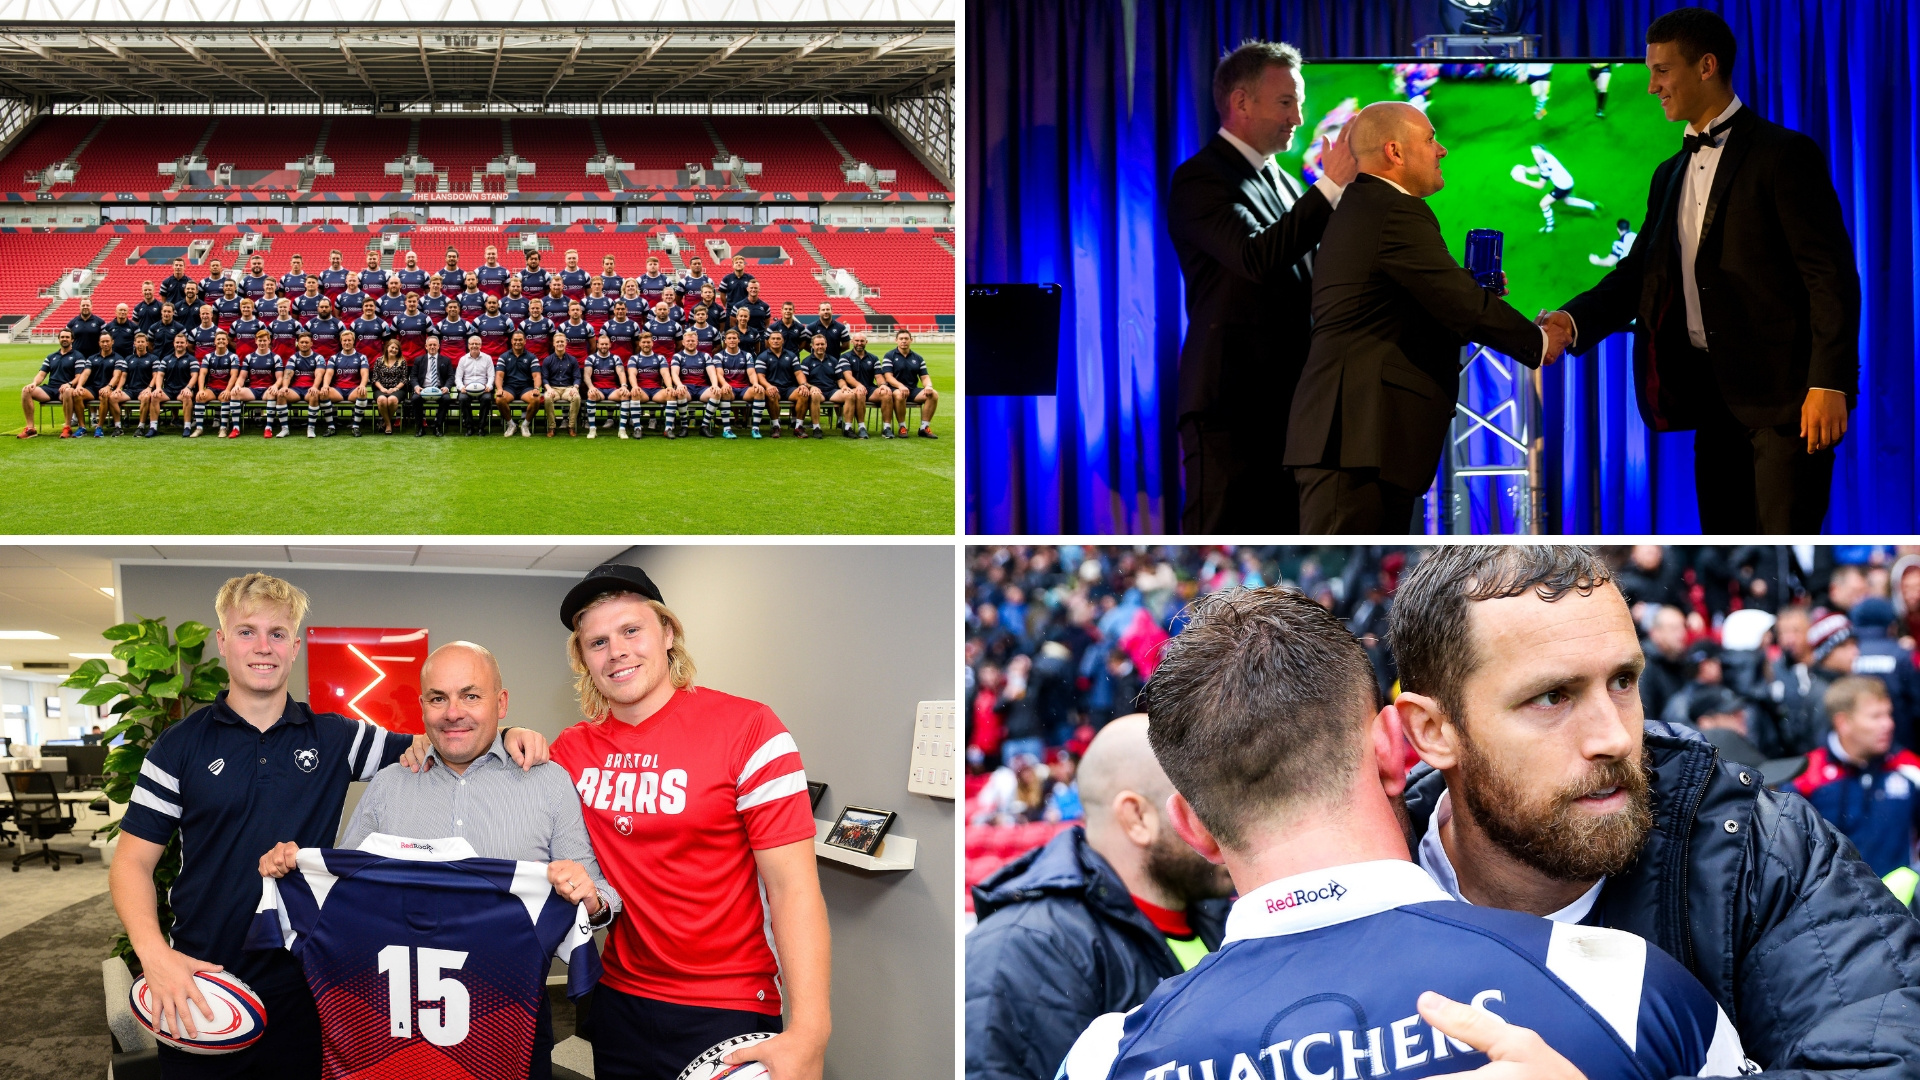 RedRock's partnership with Bristol Bears